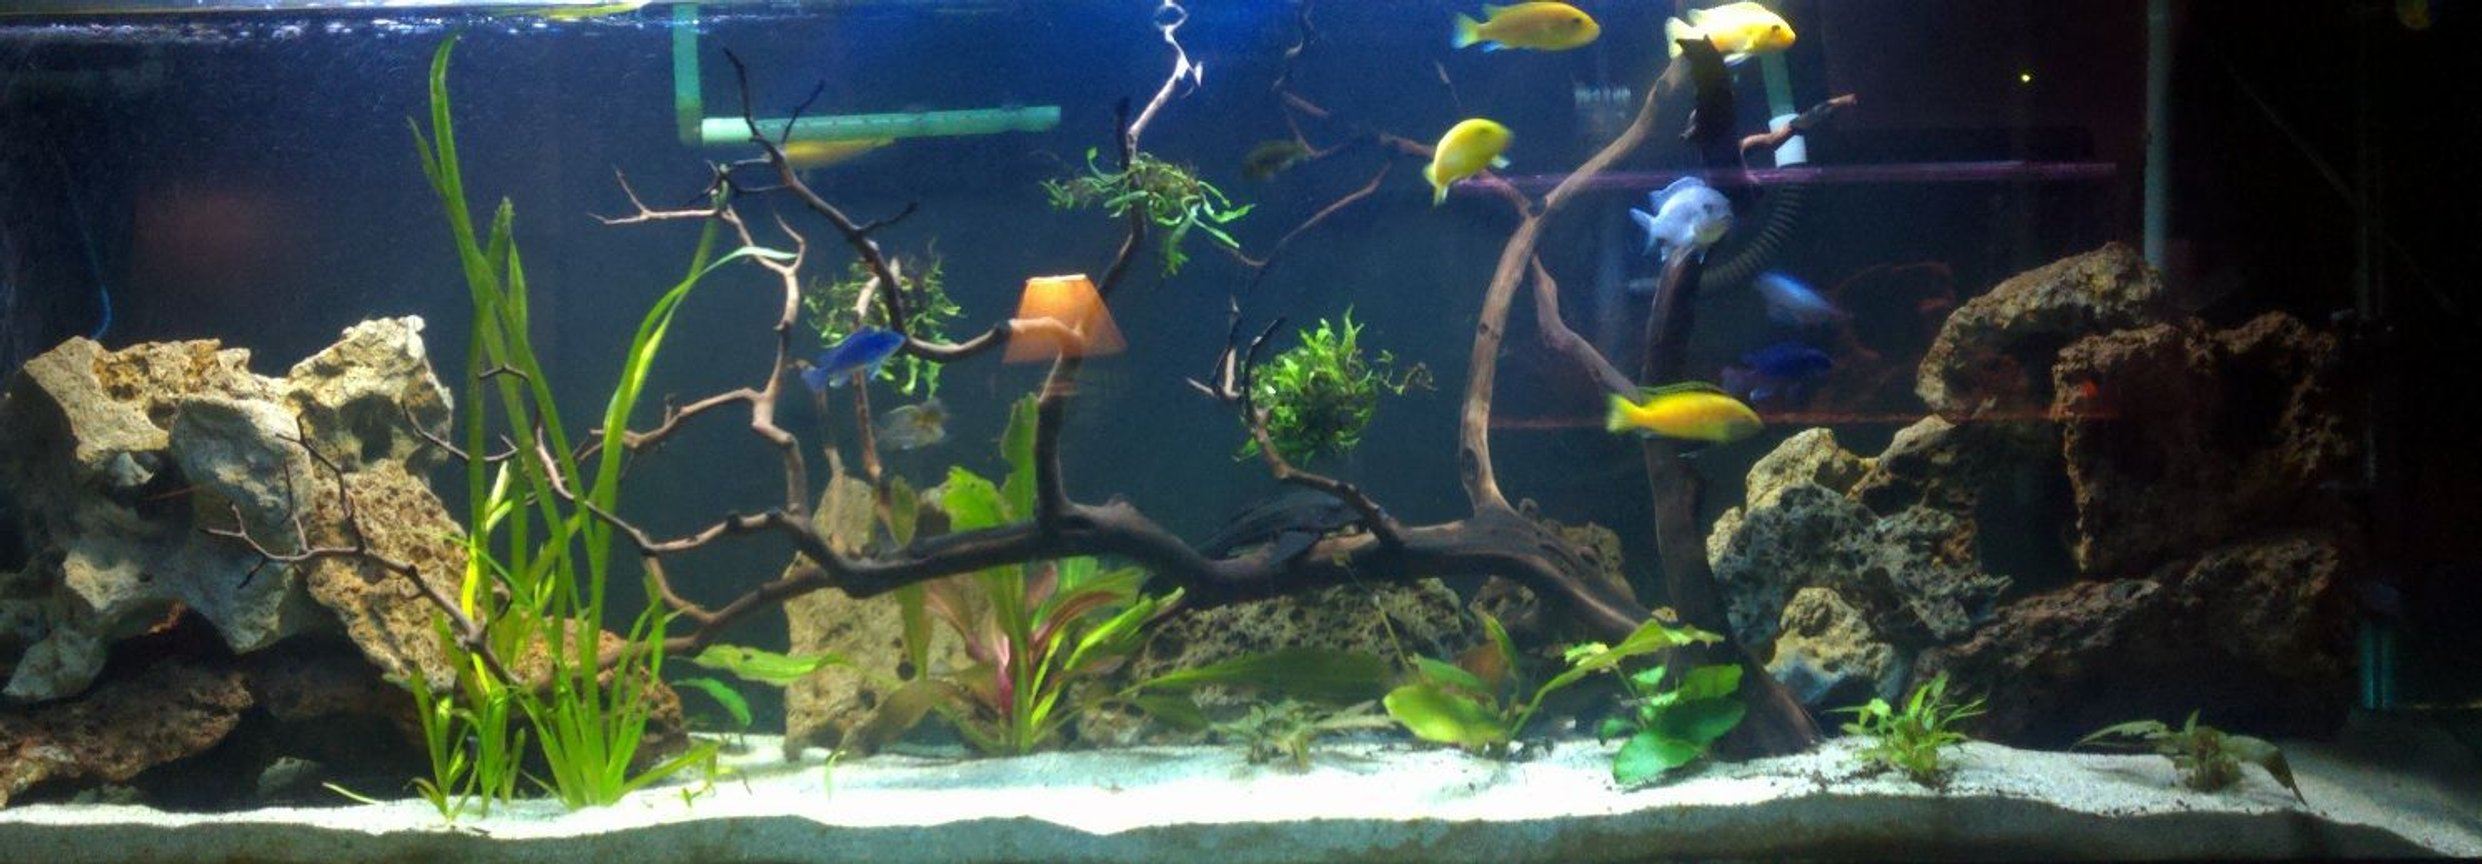 125 gallons planted tank (mostly live plants and fish) - 125g planted Mbuna tank